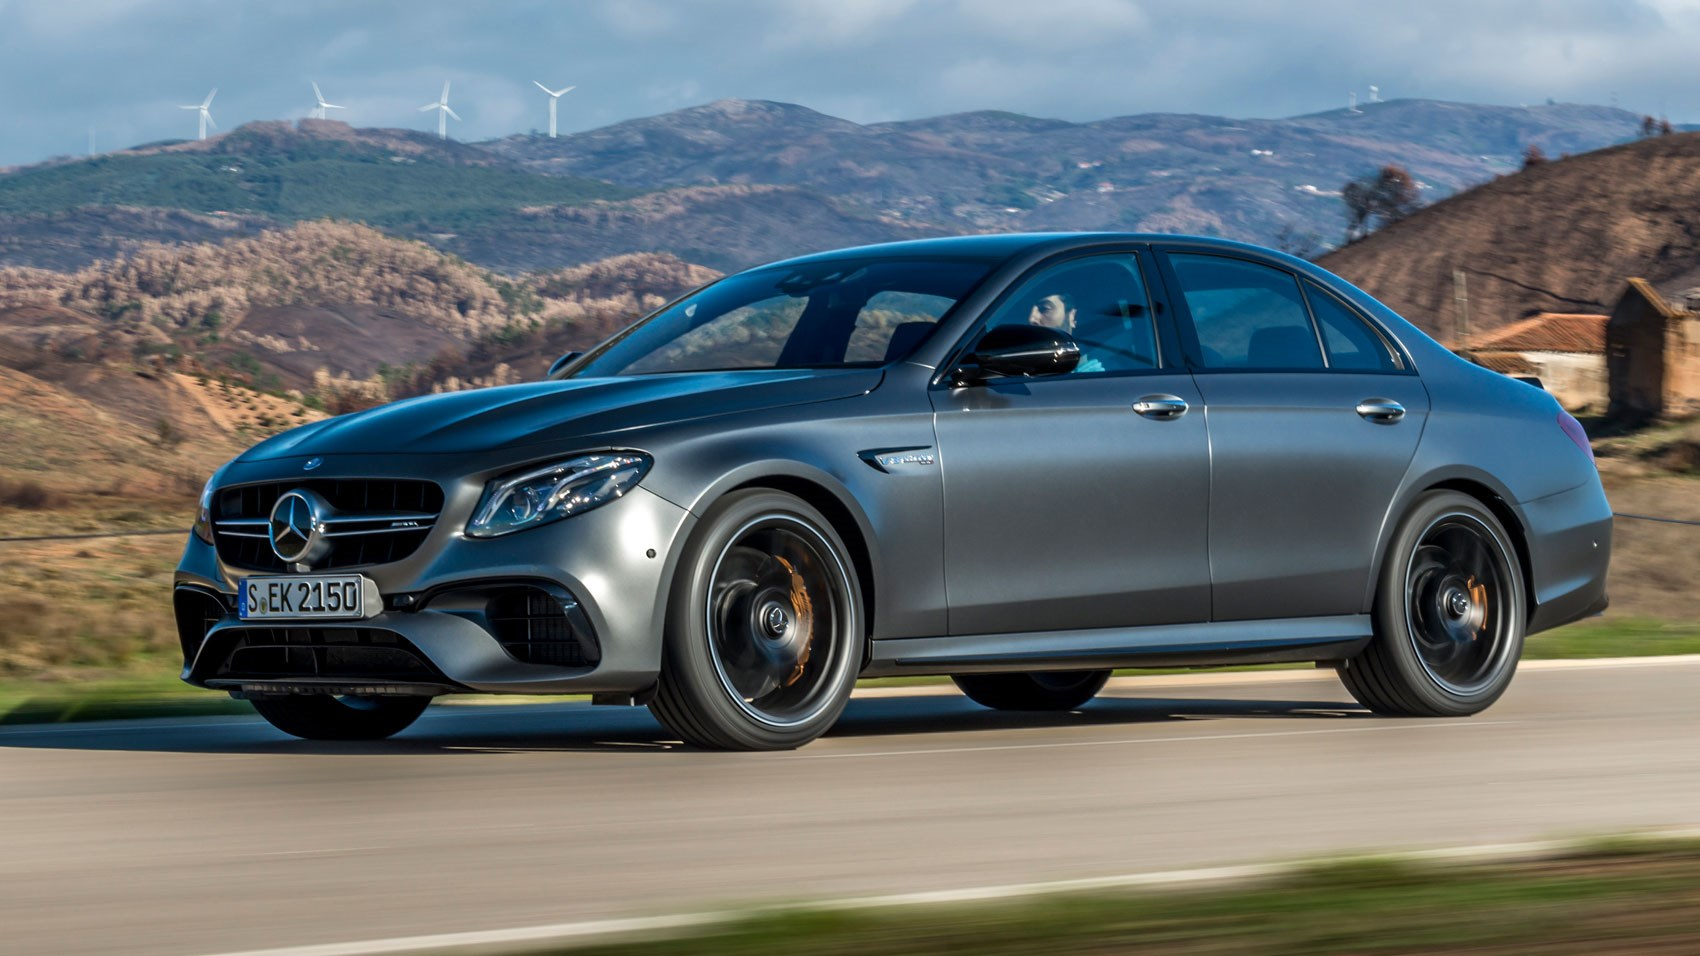 mercedes amg e63 s 4matic 2017 review by car magazine. Black Bedroom Furniture Sets. Home Design Ideas